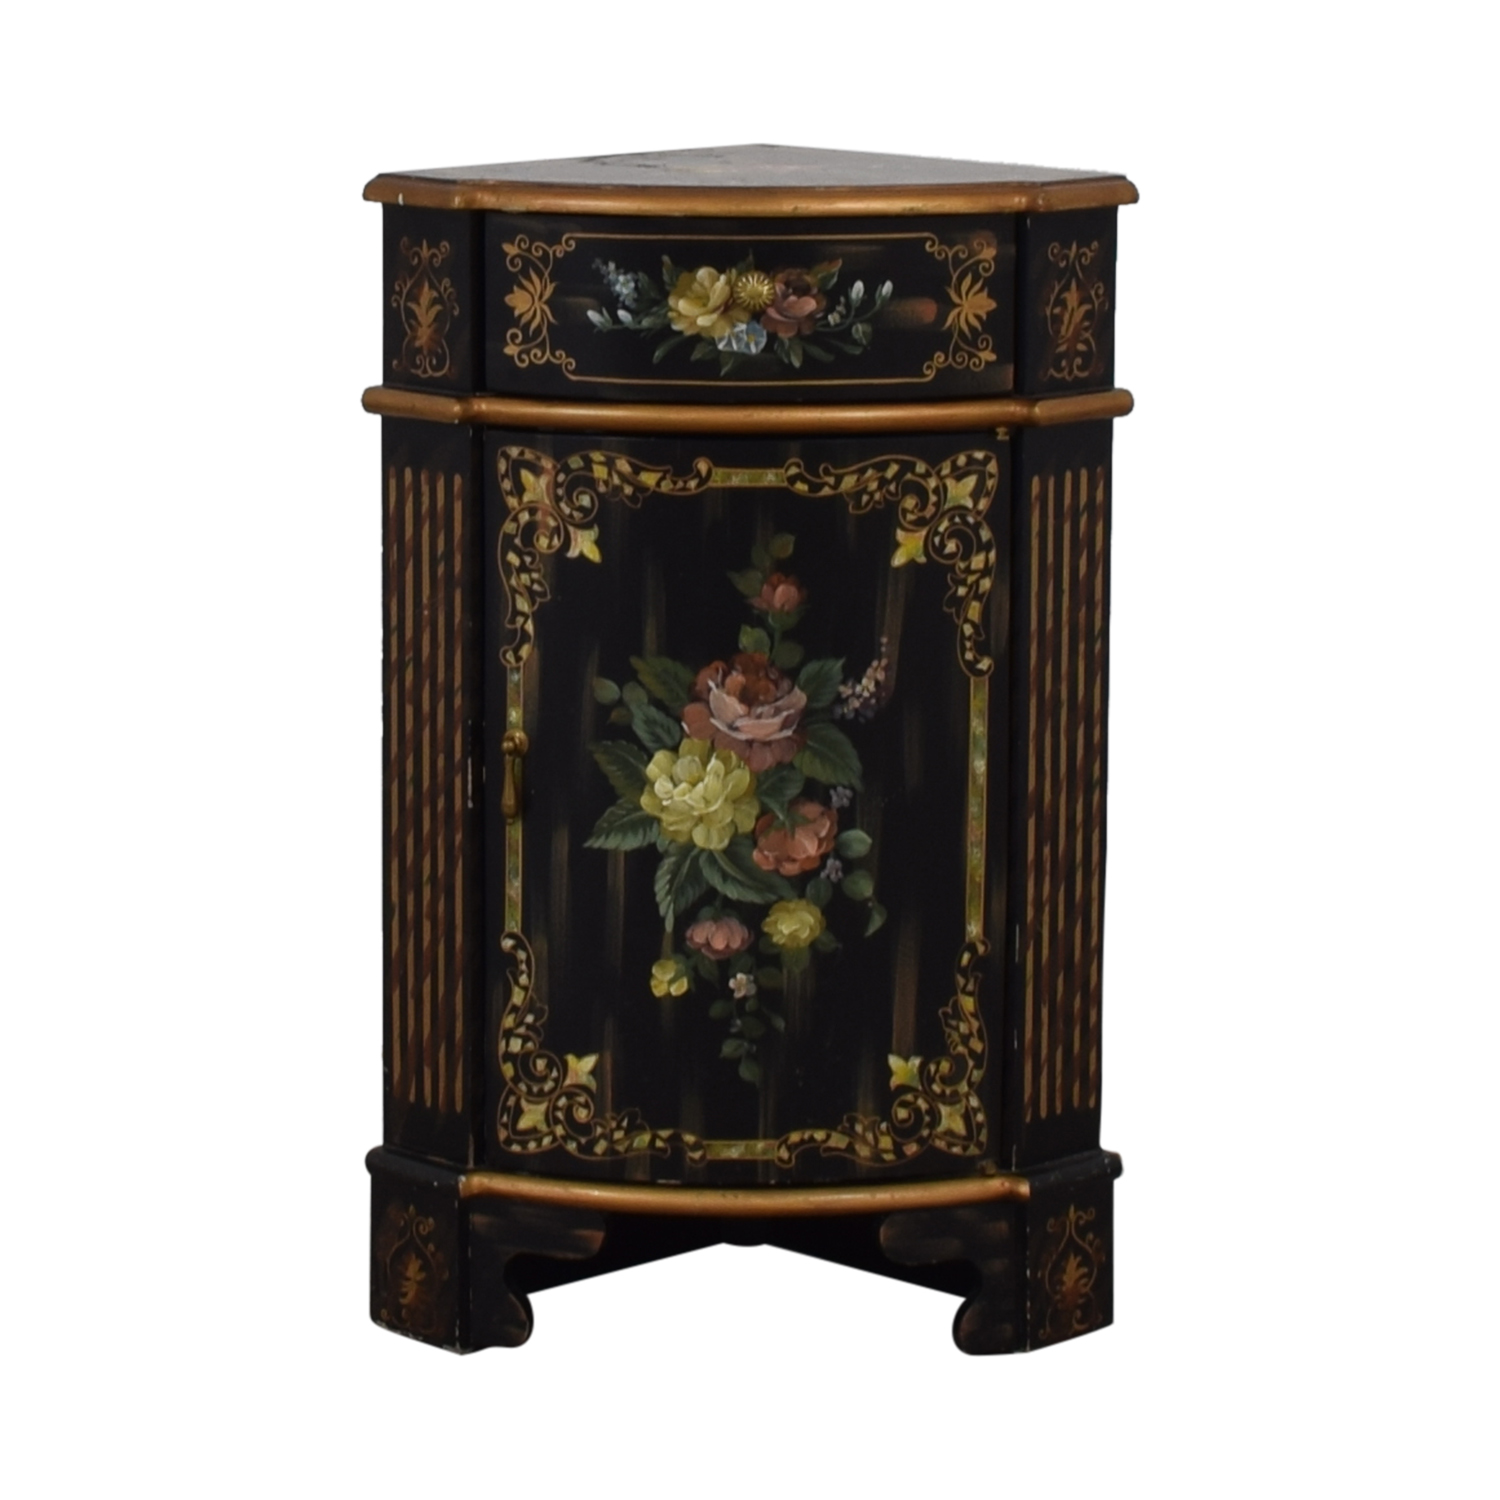 off antique black hand painted single drawer corner cabinet accent table tables small white desk designer lamp retro modern chairs outdoor furniture calgary cube storage unit ikea